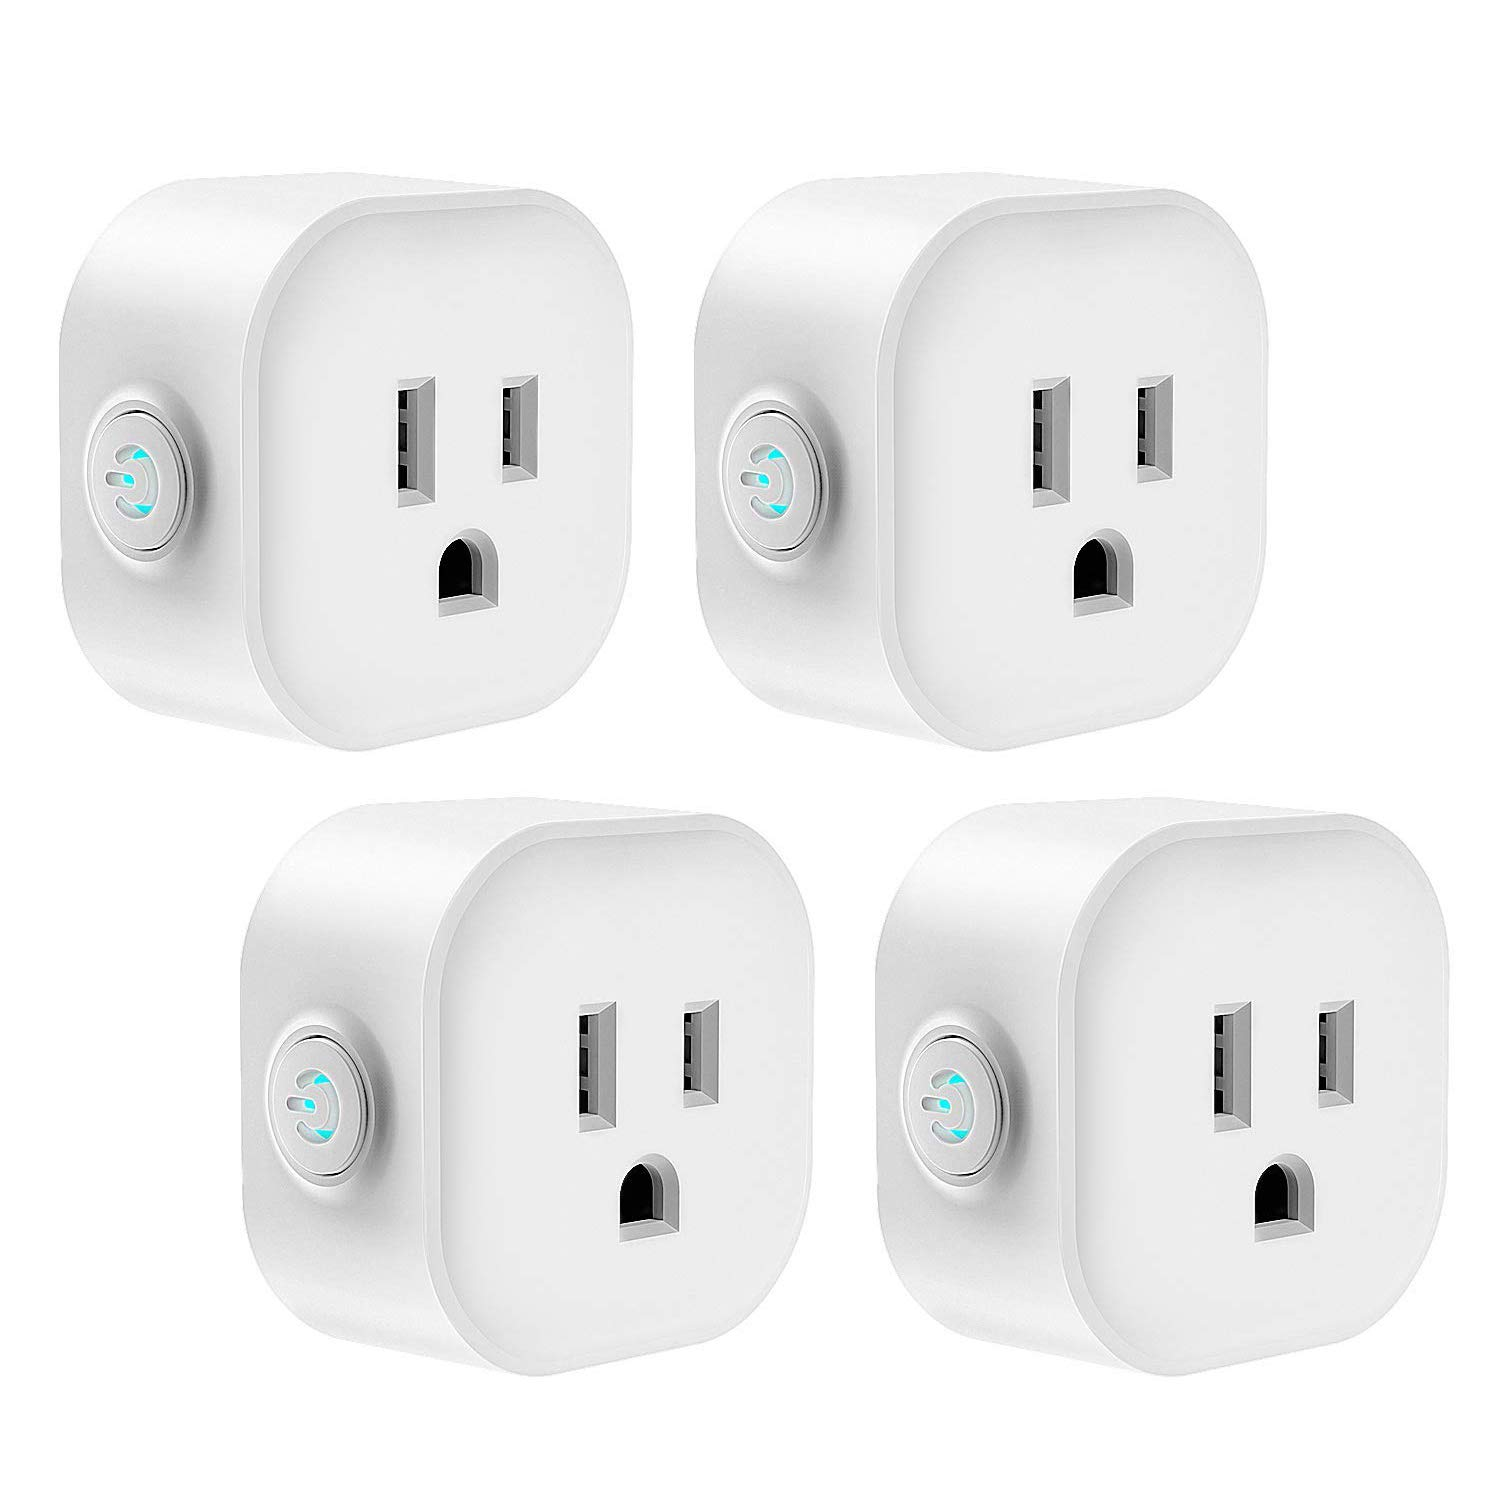 Smart Plug, Wifi Smart Outlet Switch Works with Alexa & Google Assistant, Remote Control Your Devices Anywhere, Voice Control with Echo & Google Home, IFTTT, No Hub Required, 4-Pack